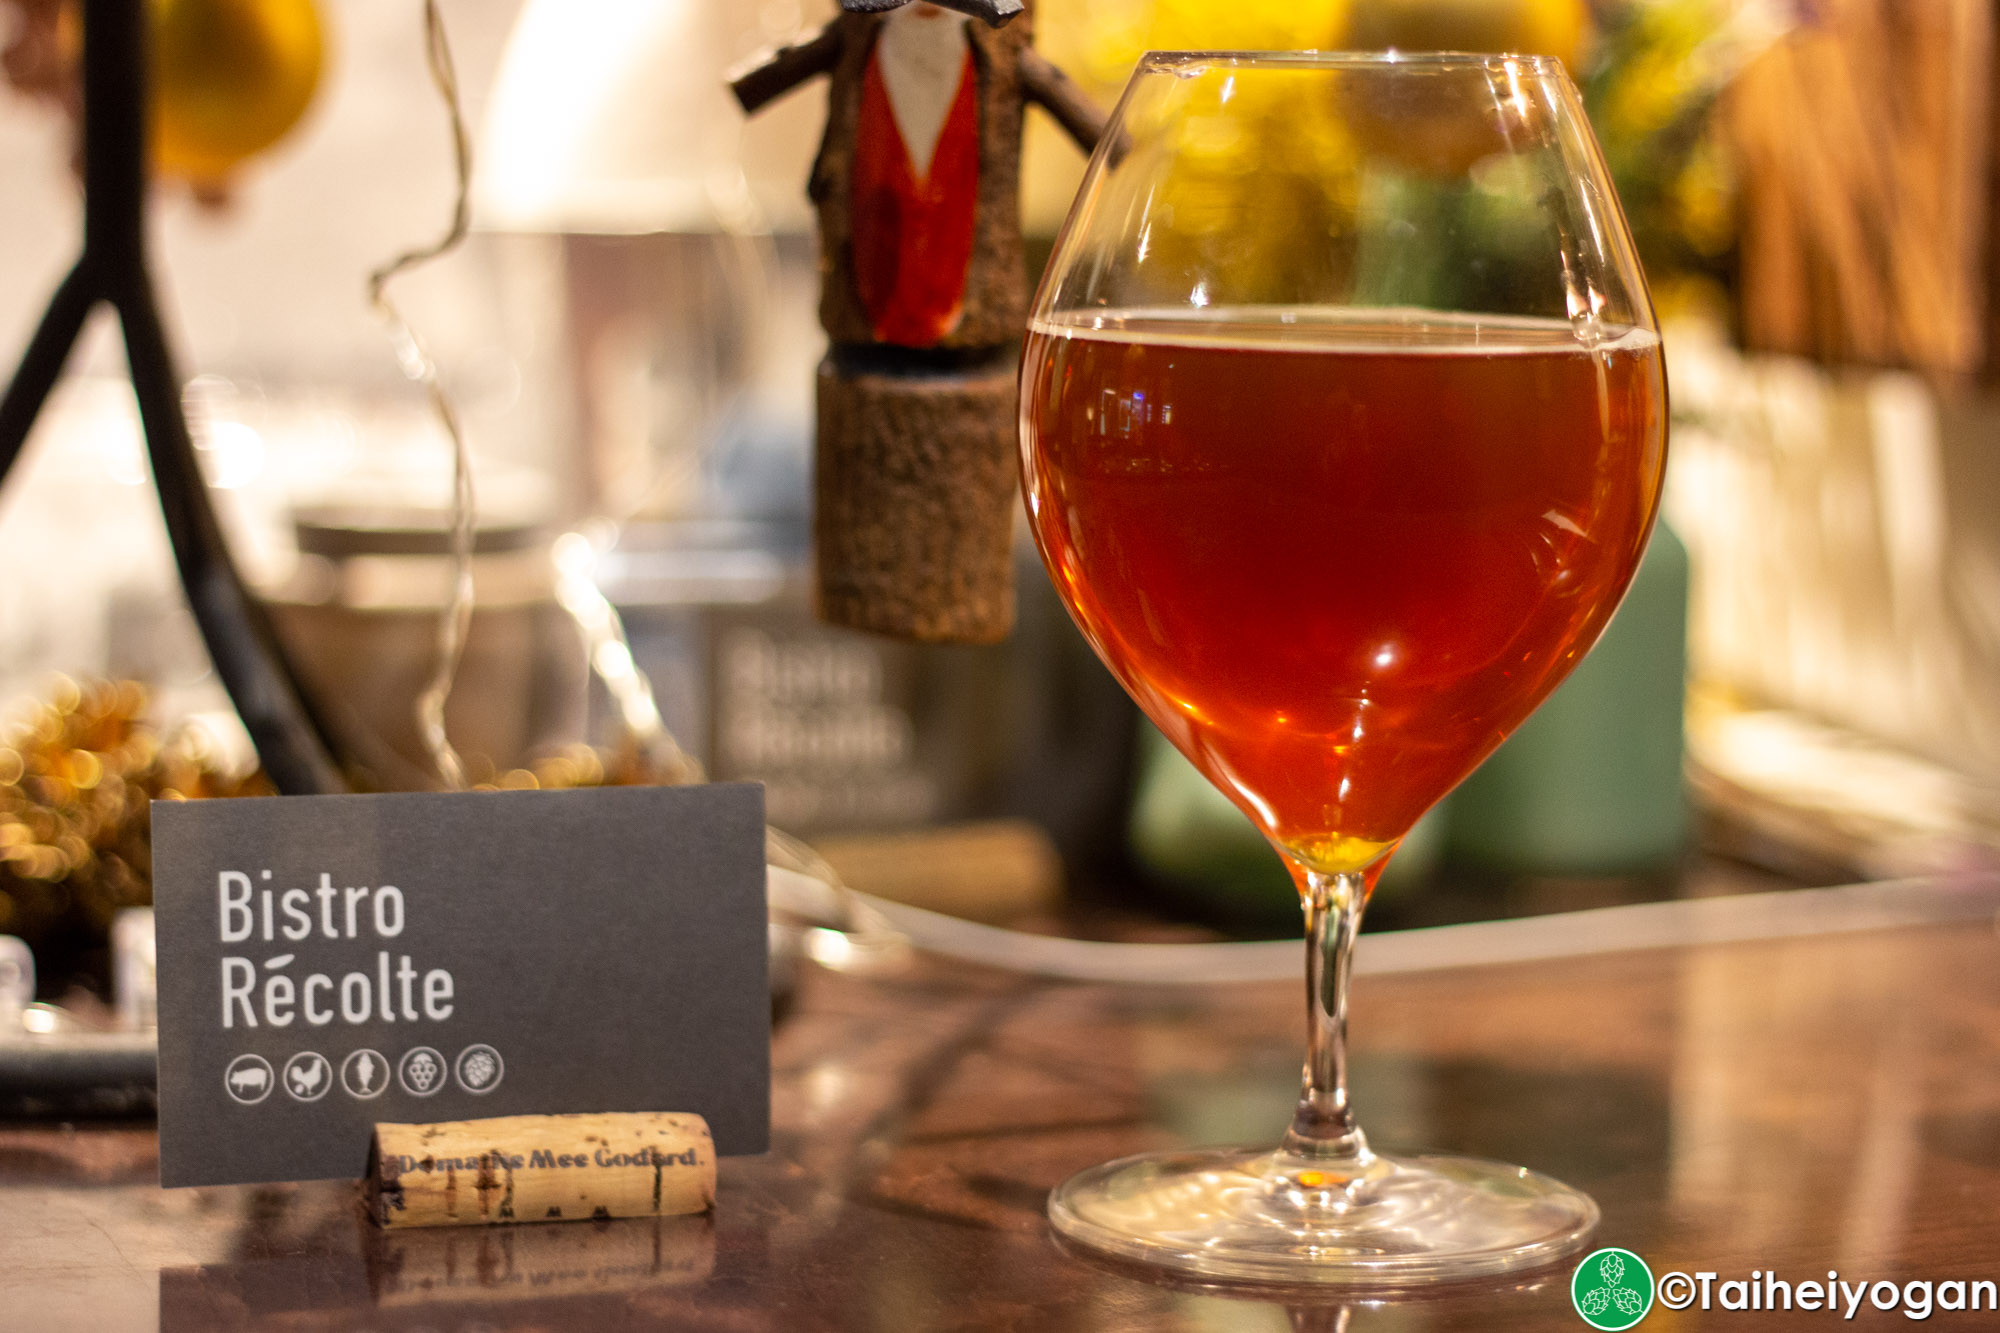 Bistro Recolte - Menu - Craft Beer